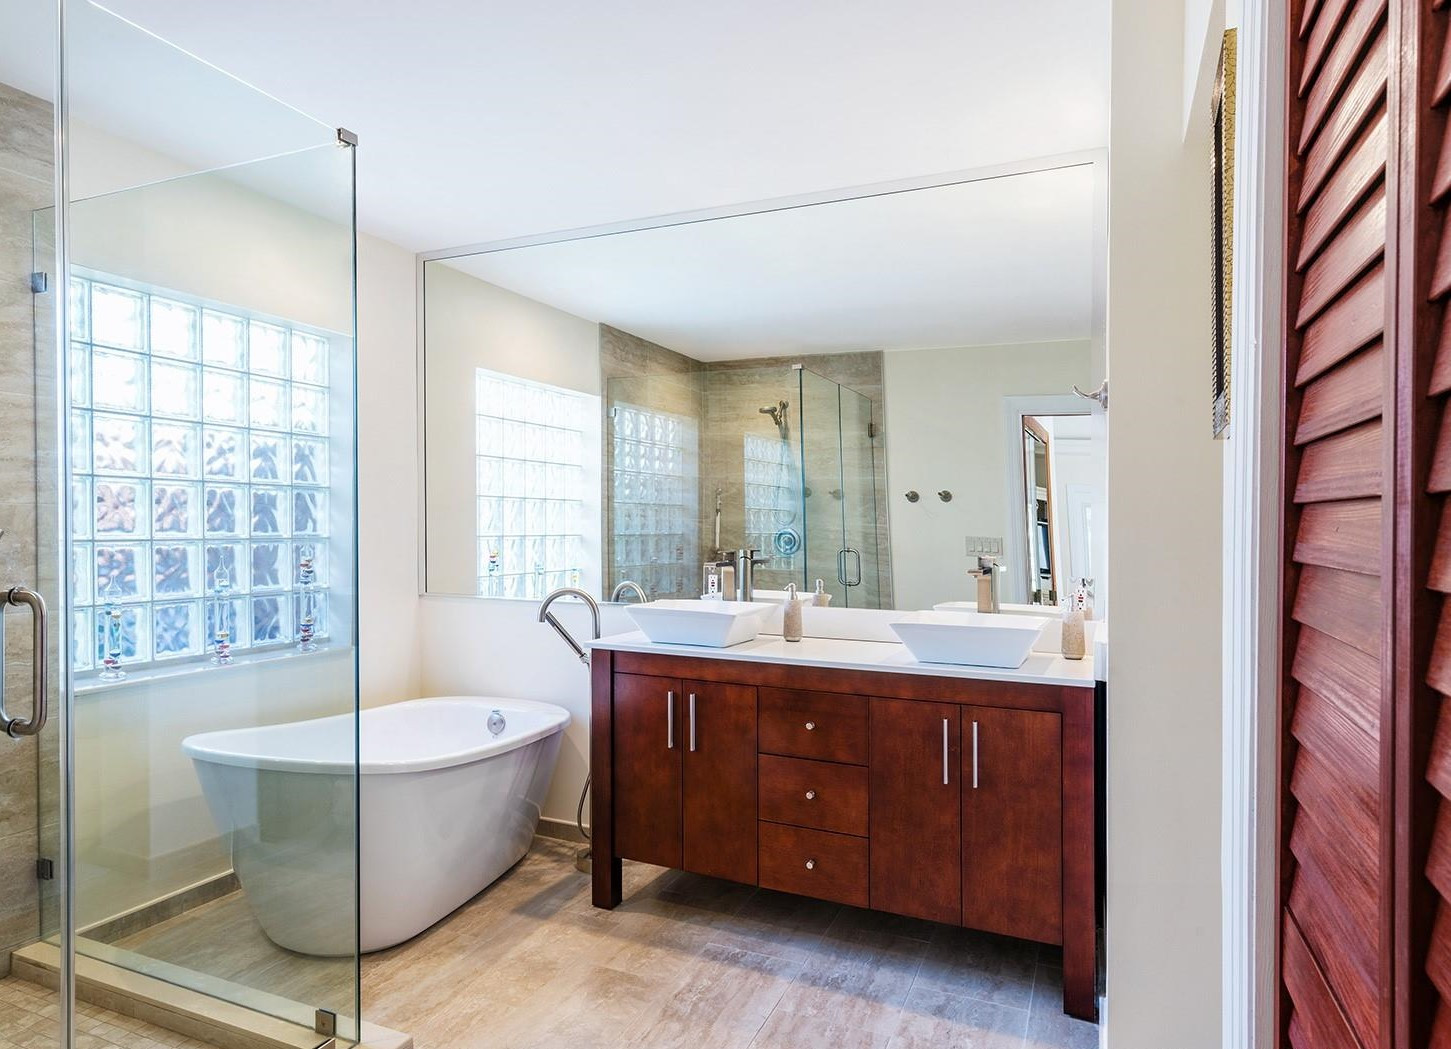 Transitional Master Bathroom Remodel Featuring Free Standing